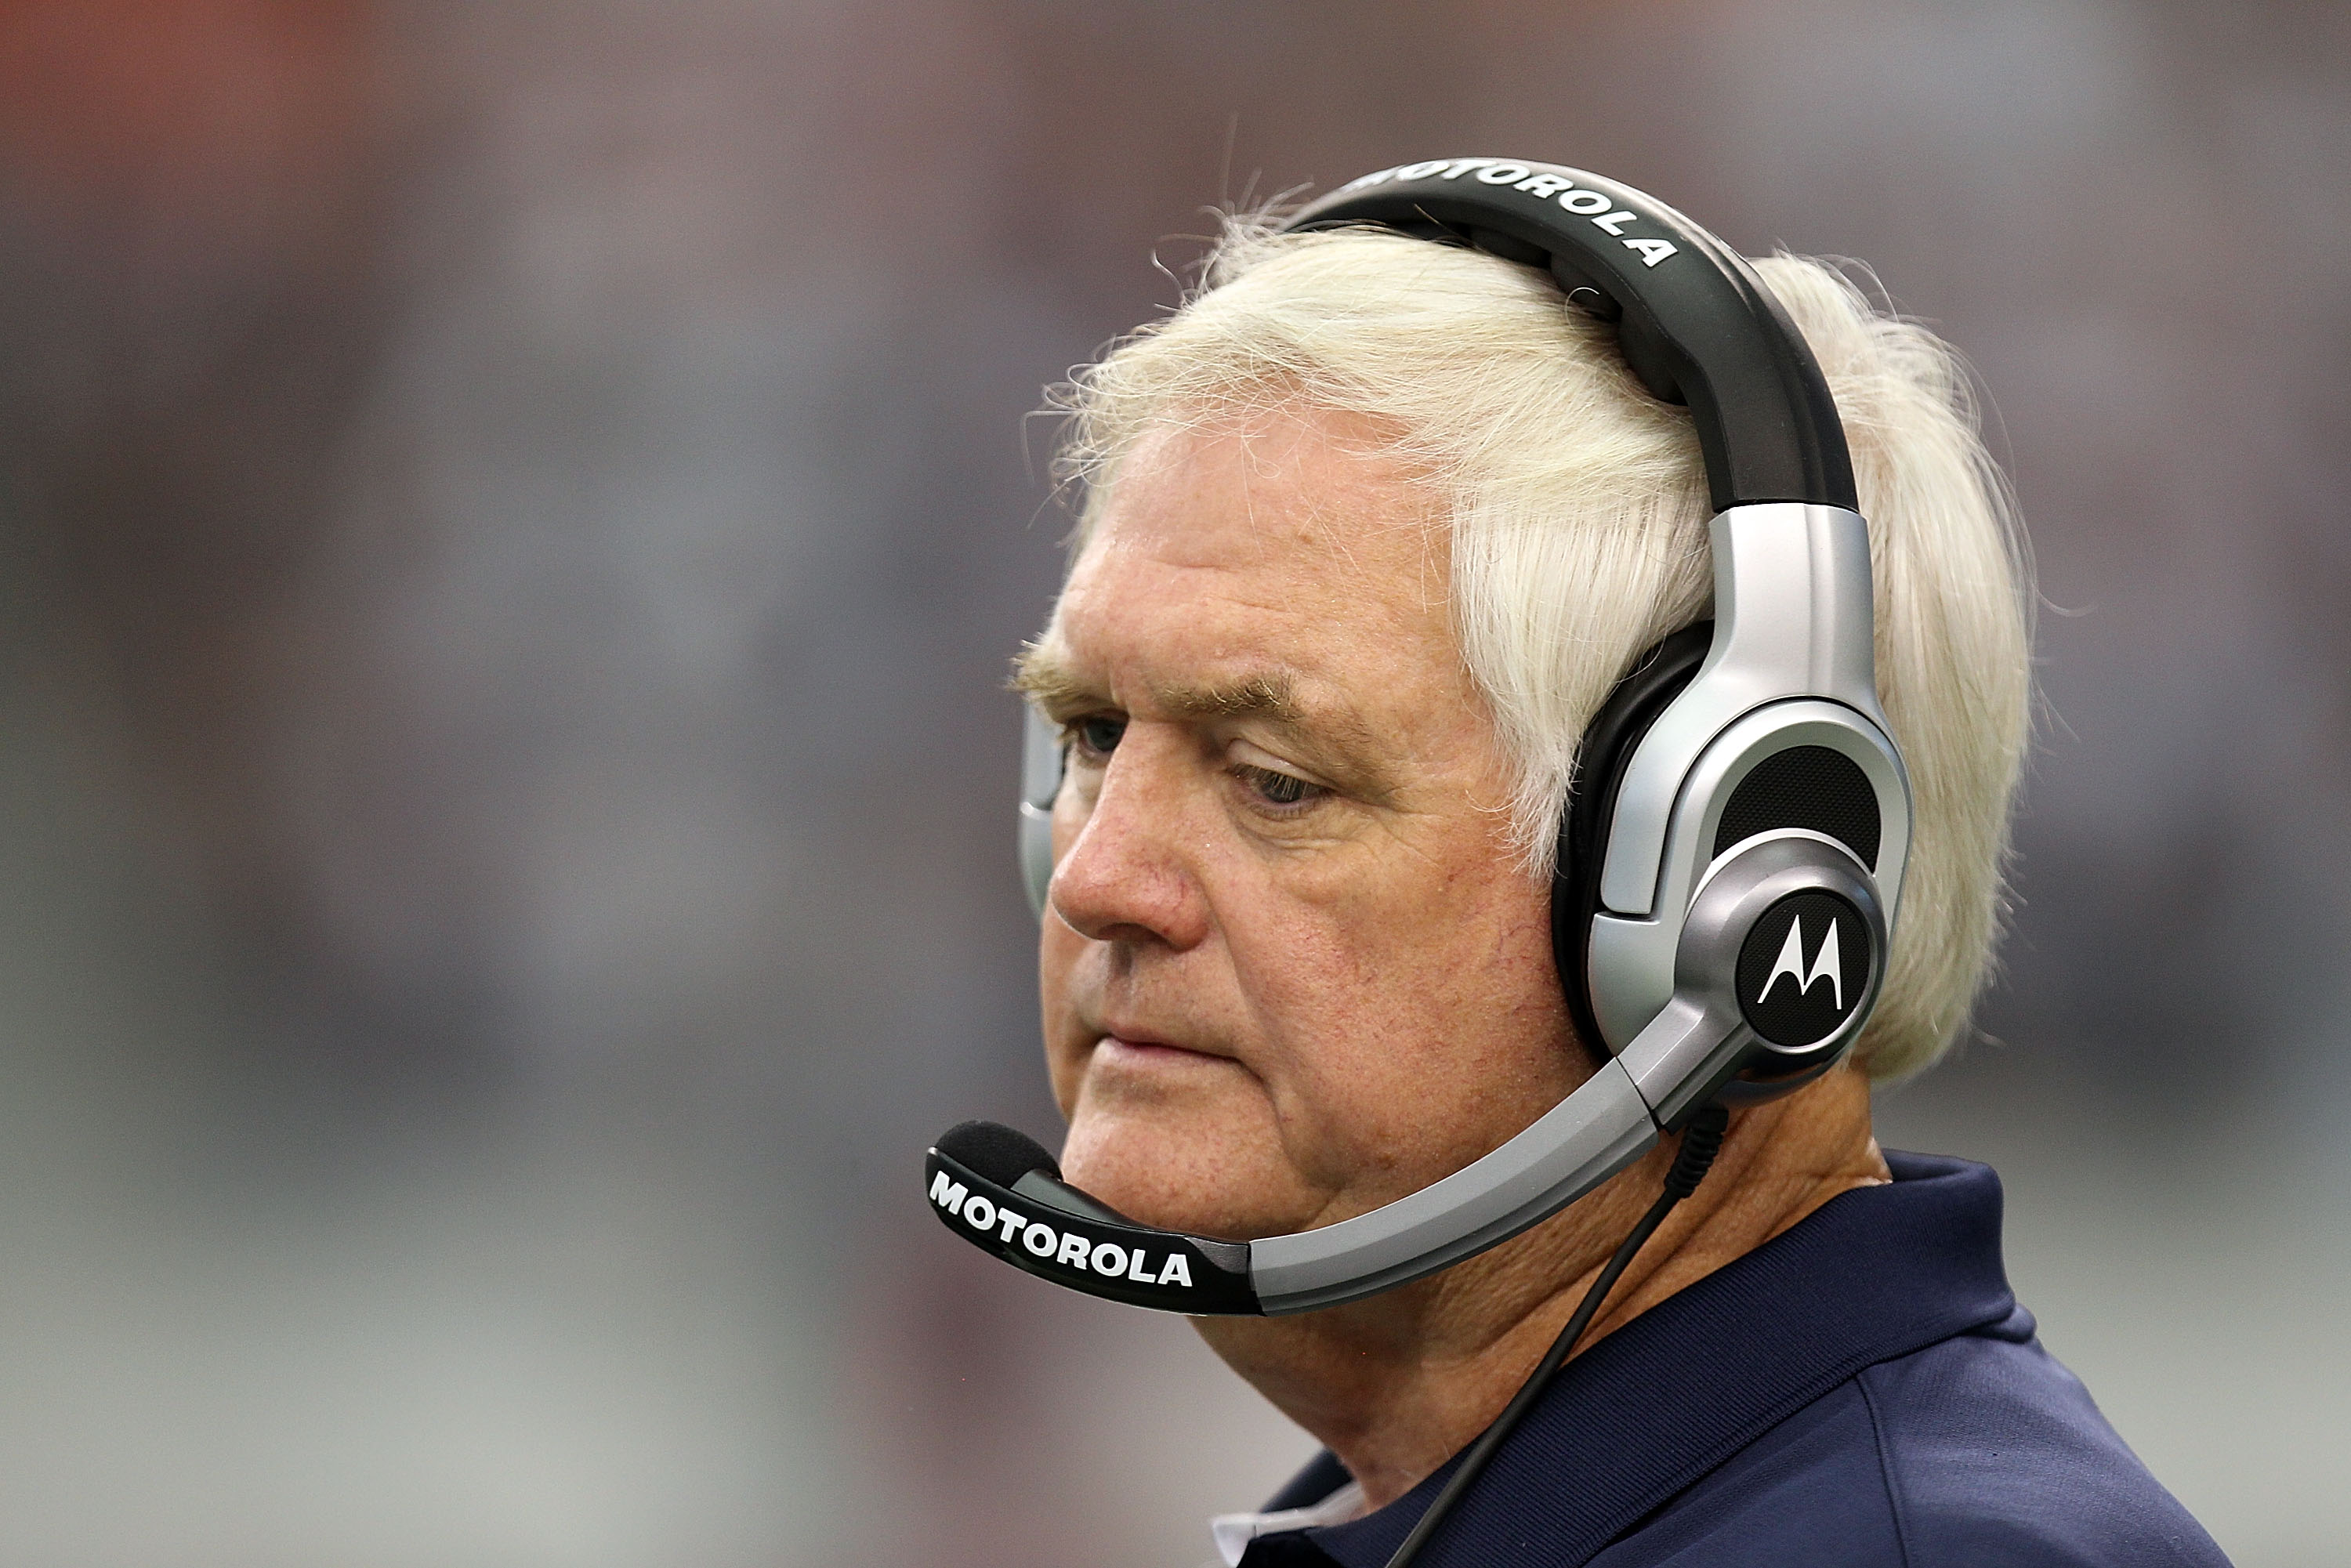 ARLINGTON, TX - SEPTEMBER 19:  Head coach Wade Phillips of the Dallas Cowboys reacts during a 27-20 loss against the Chicago Bears at Cowboys Stadium on September 19, 2010 in Arlington, Texas.  (Photo by Ronald Martinez/Getty Images)